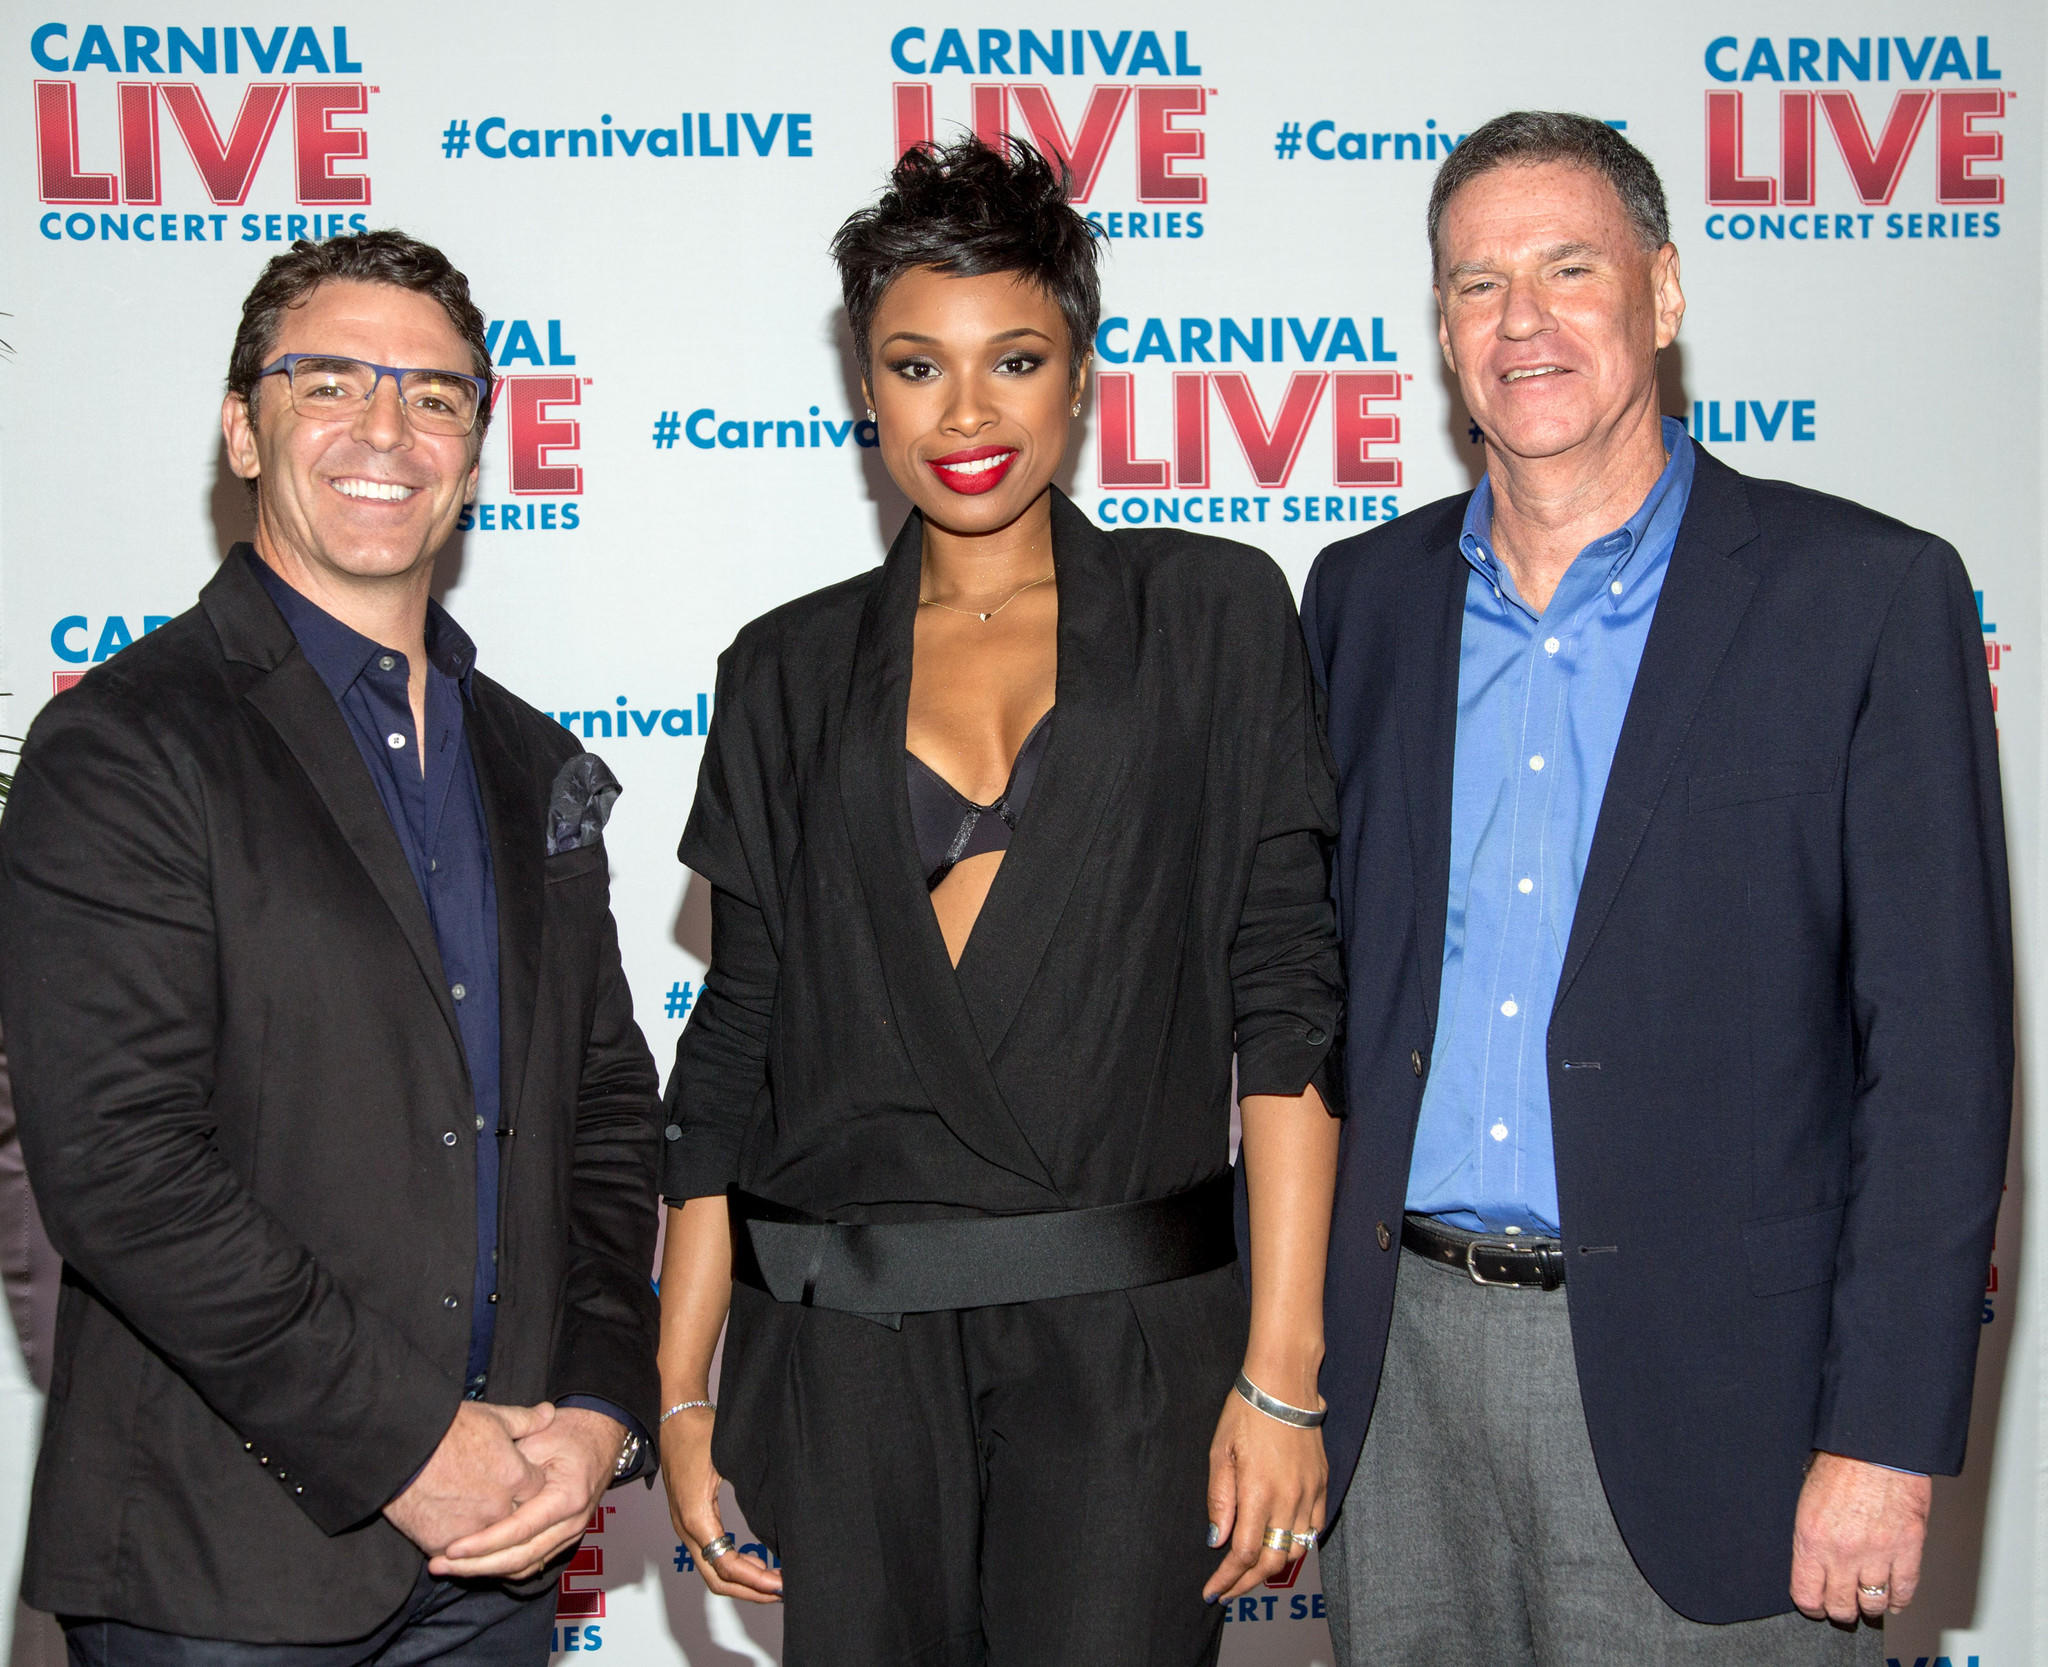 In this photo provided by Carnival Cruise Lines, Jennifer Hudson, GRAMMY Award-winning recording artist, joins Gerry Cahill, President and CEO of Carnival Cruise Lines, and Mark Tamis, Senior Vice President, Guest Operations of Carnival Cruise Lines, to announce Carnival LIVE, a new onboard concert series Jan. 22, 2014 in New York. Hudson, who gave a special surprise performance at the event, will entertain Carnival guests as part of the series which also includes other popular pop, classic rock and country artists.